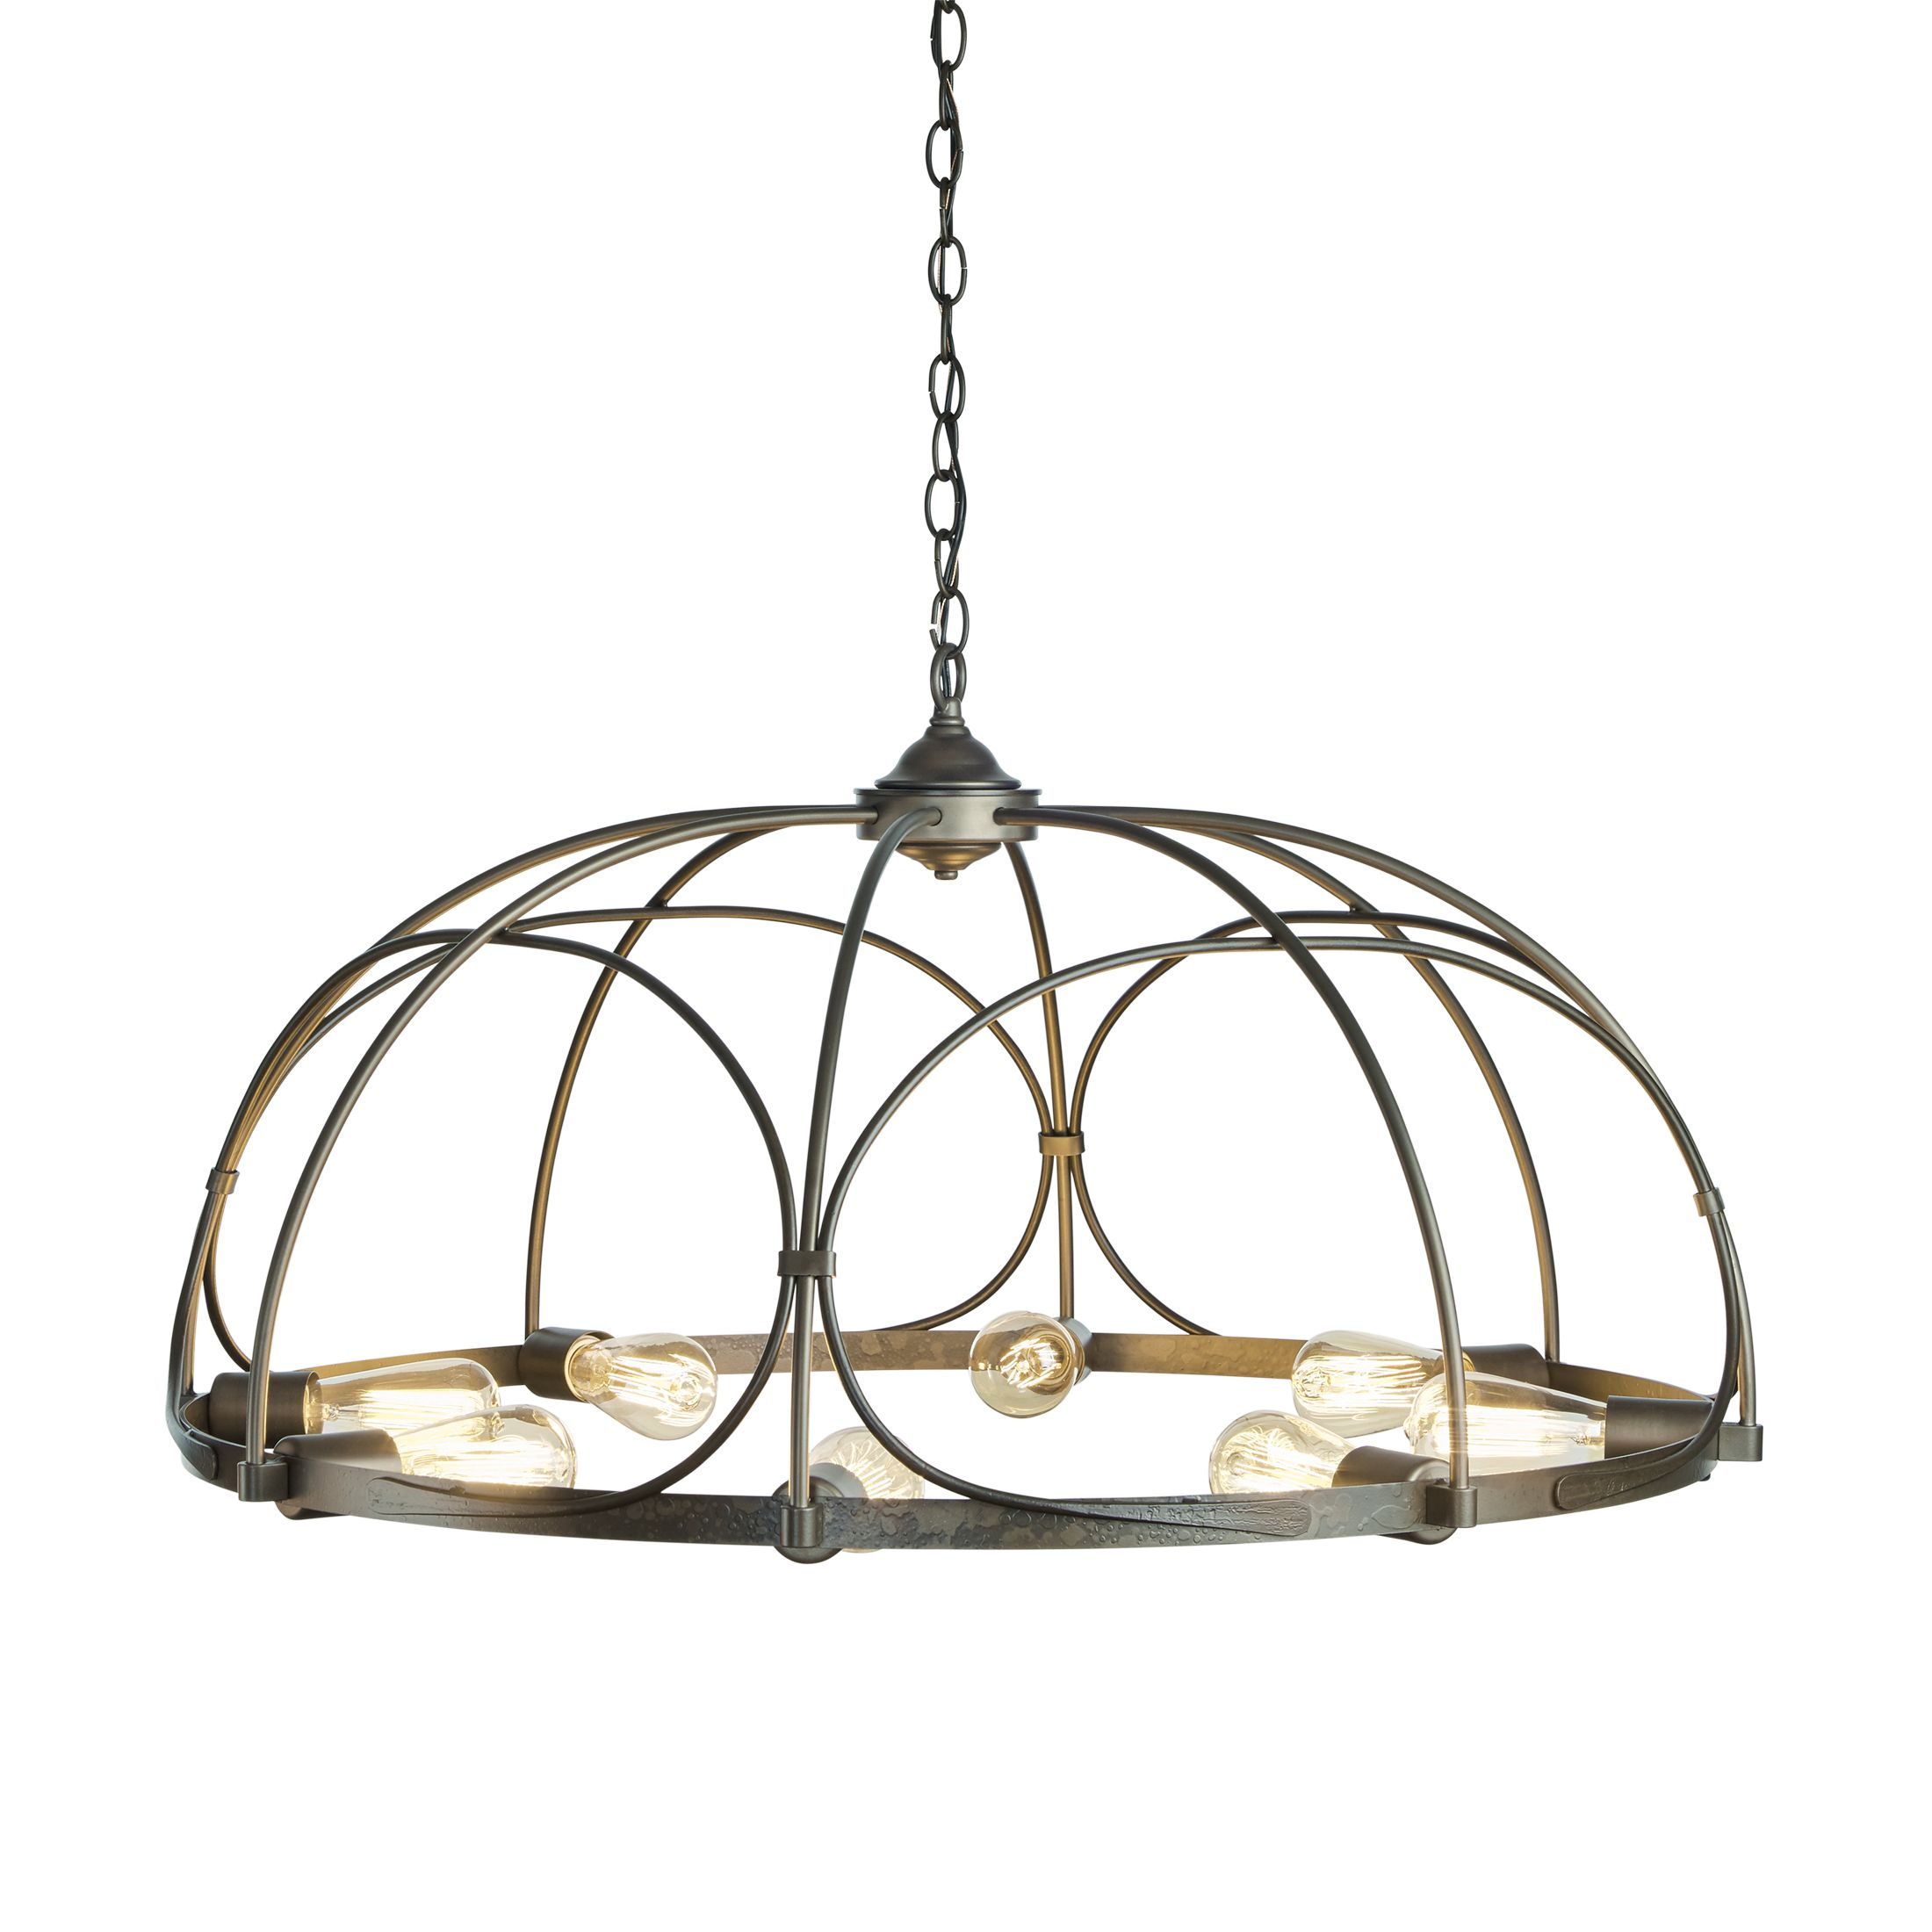 Chandeliers products hubbardton forge 104220 arbor chandelier aloadofball Choice Image